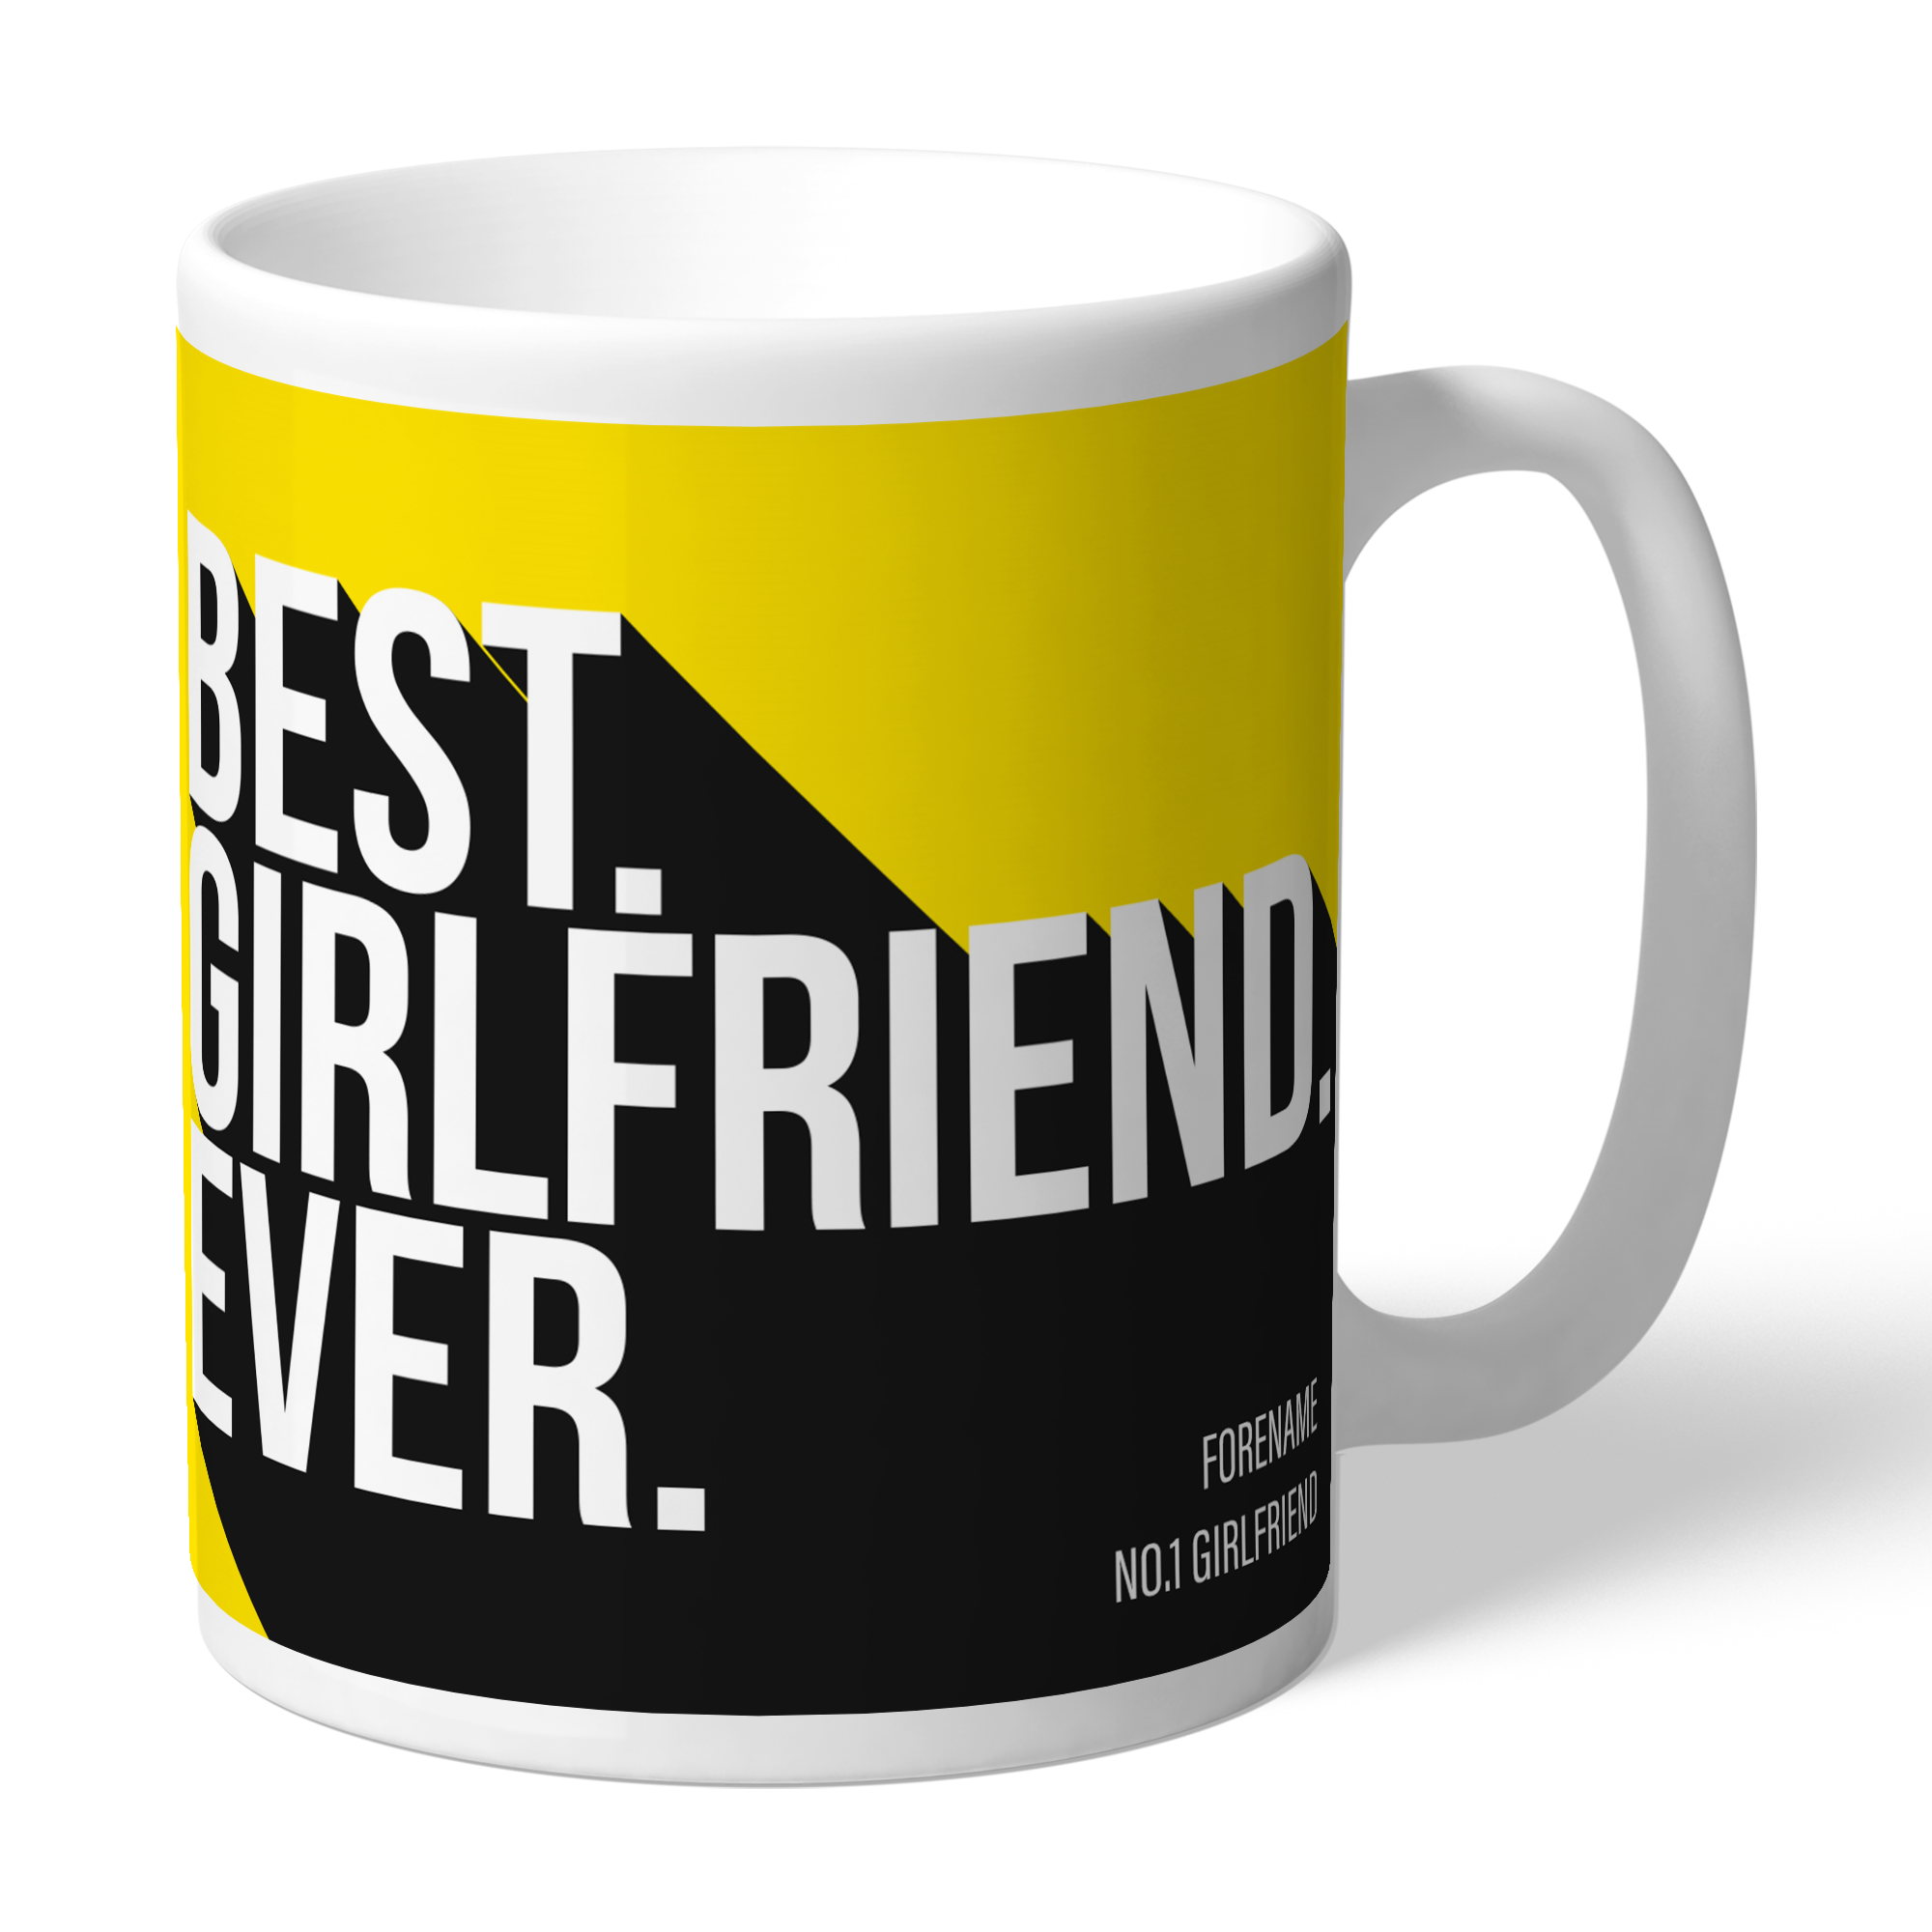 Watford FC Best Girlfriend Ever Mug